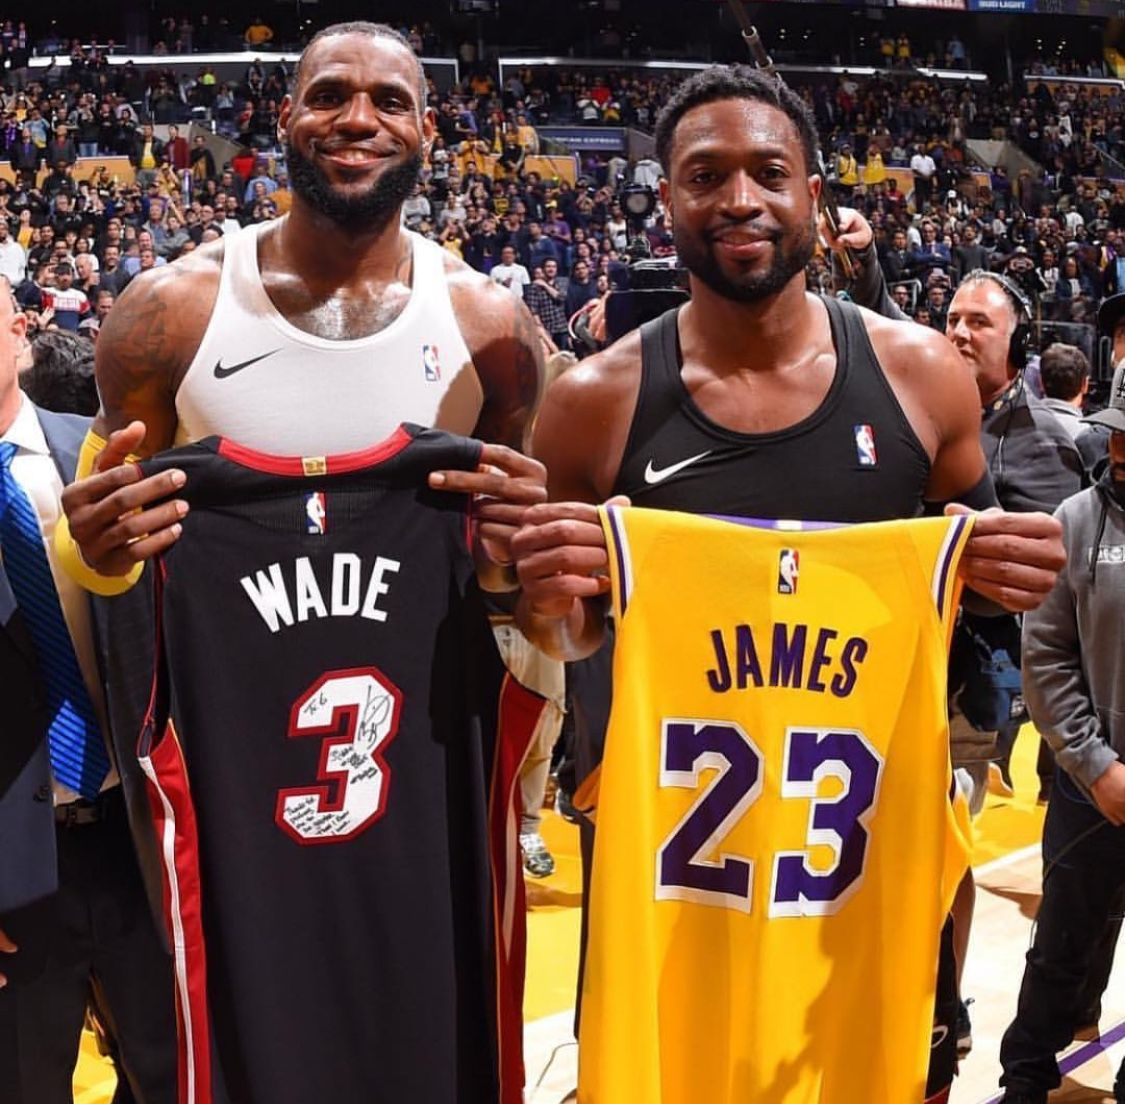 5af305be4a0 LeBron and Wade switch jerseys after there last game against each other.  What a brother good, respect. LeBron finishes there rival 16 wins to Wade's  15.